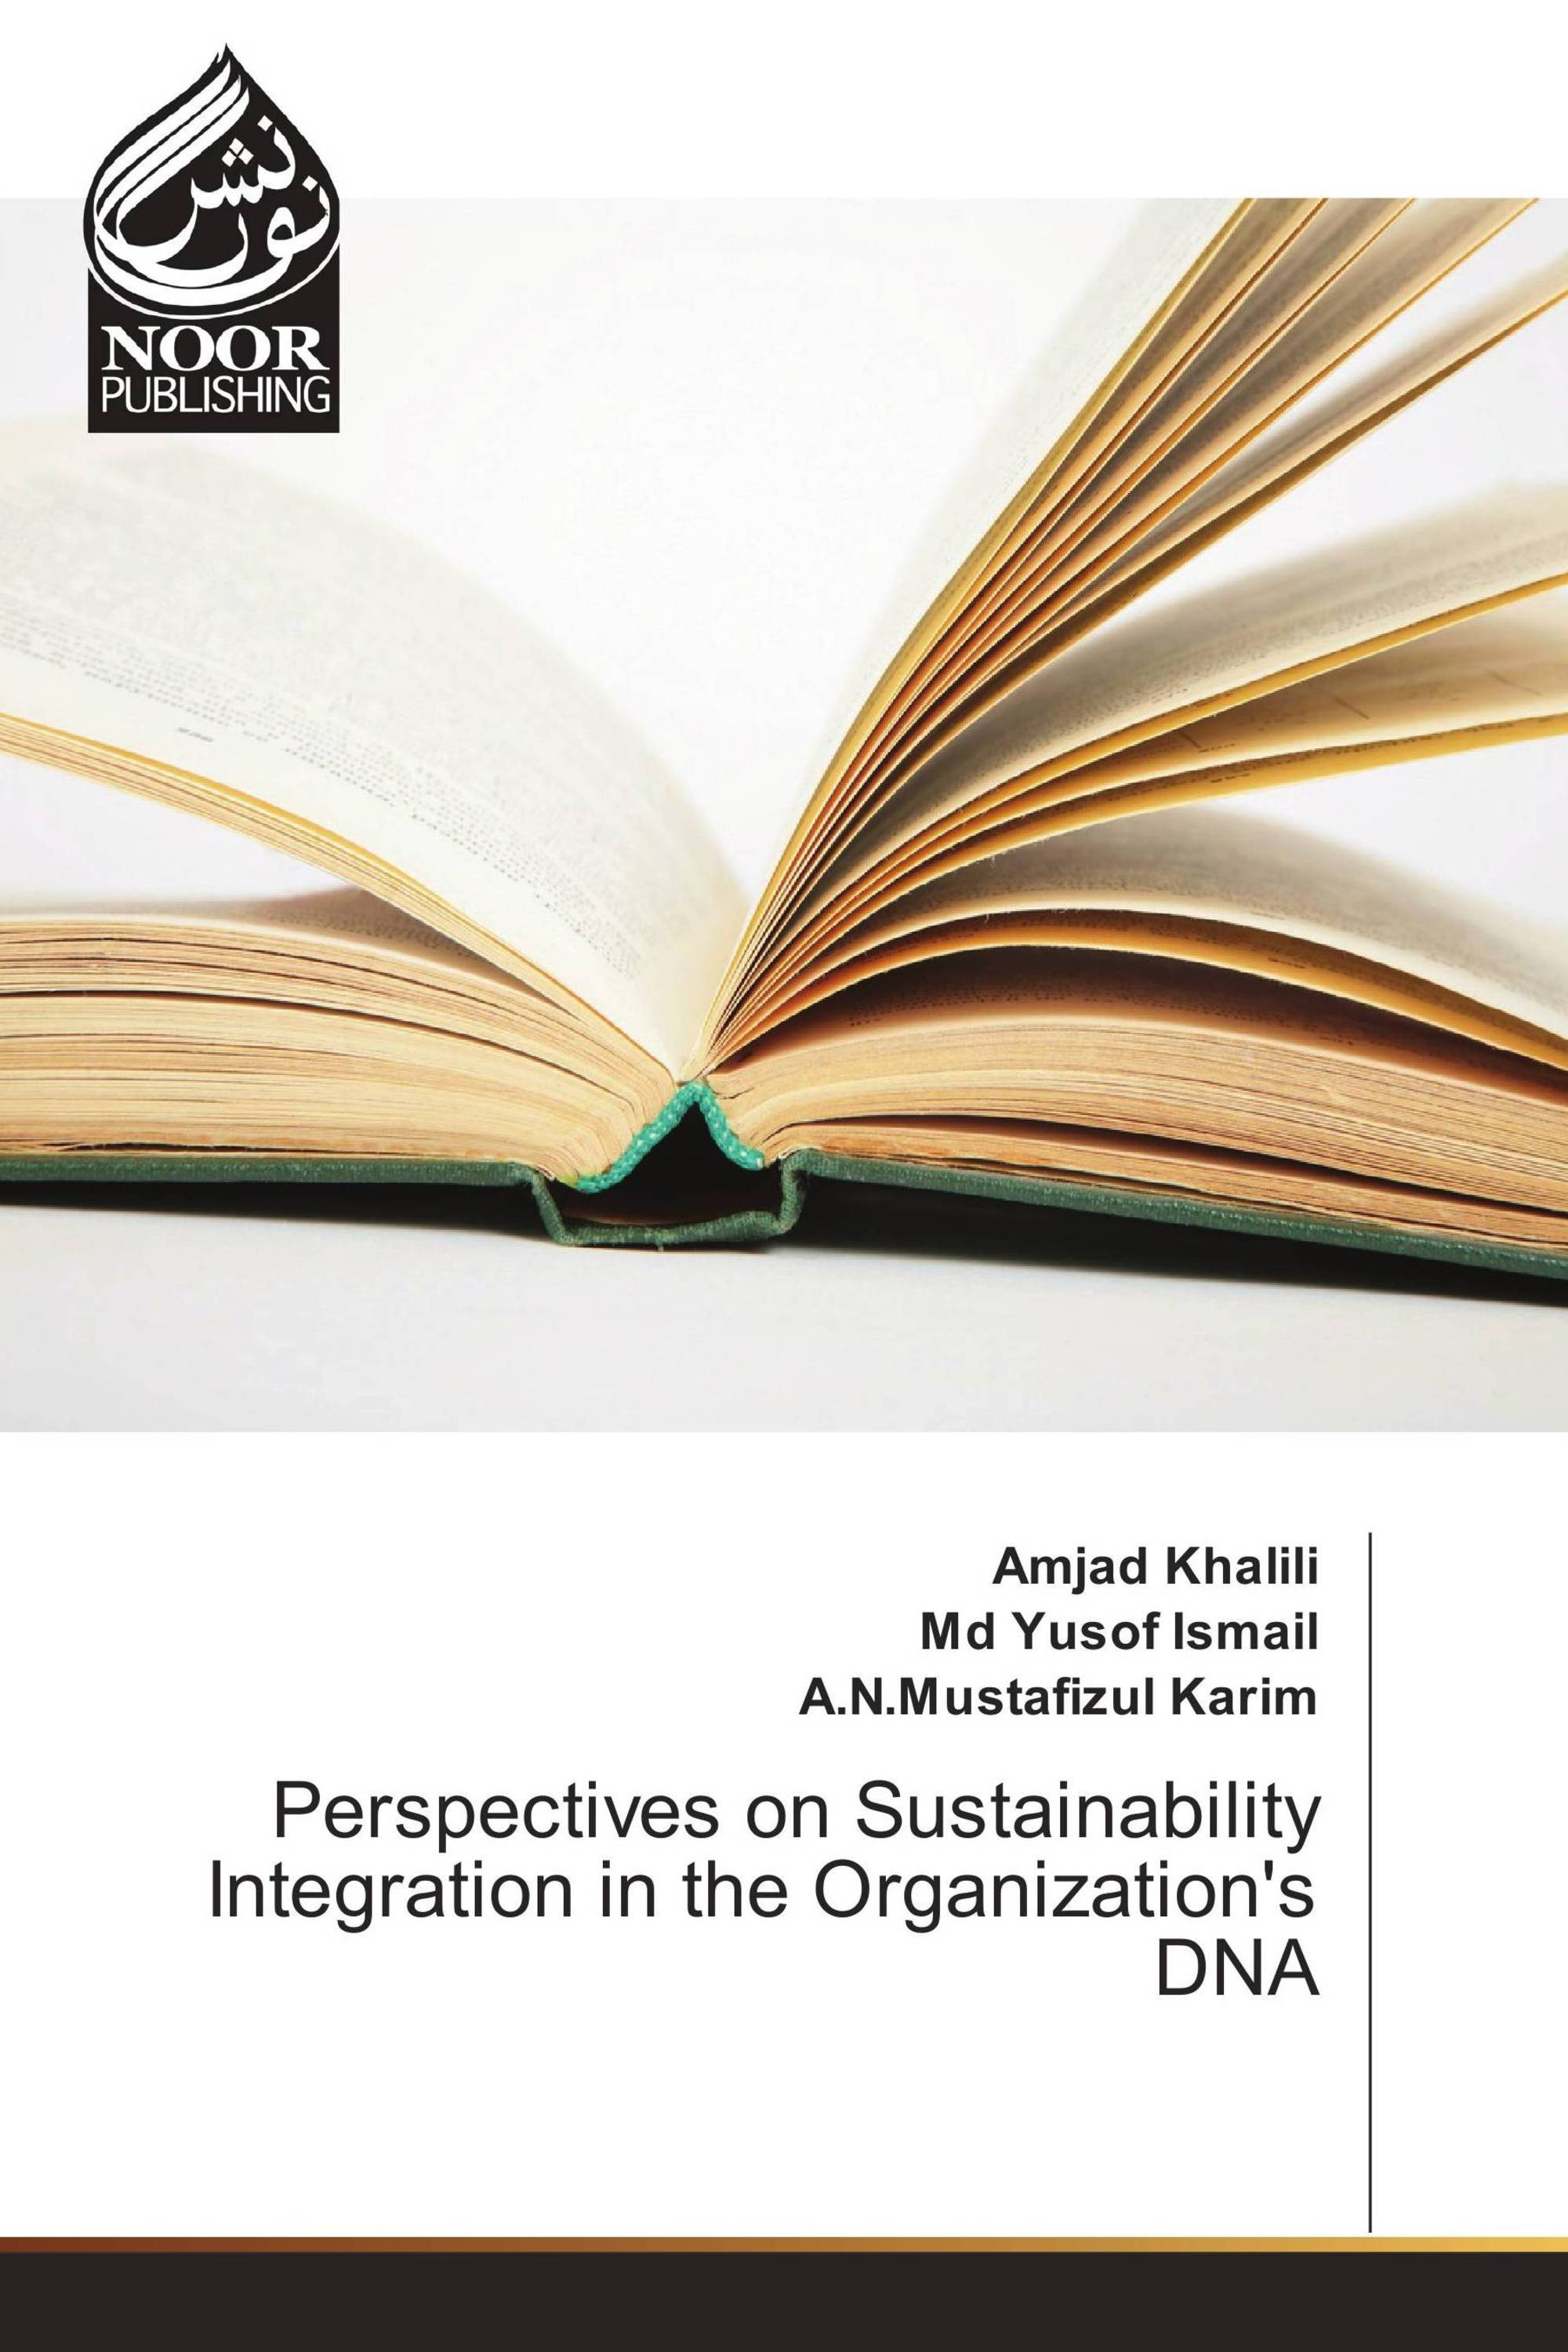 Perspectives on Sustainability Integration in the Organization's DNA